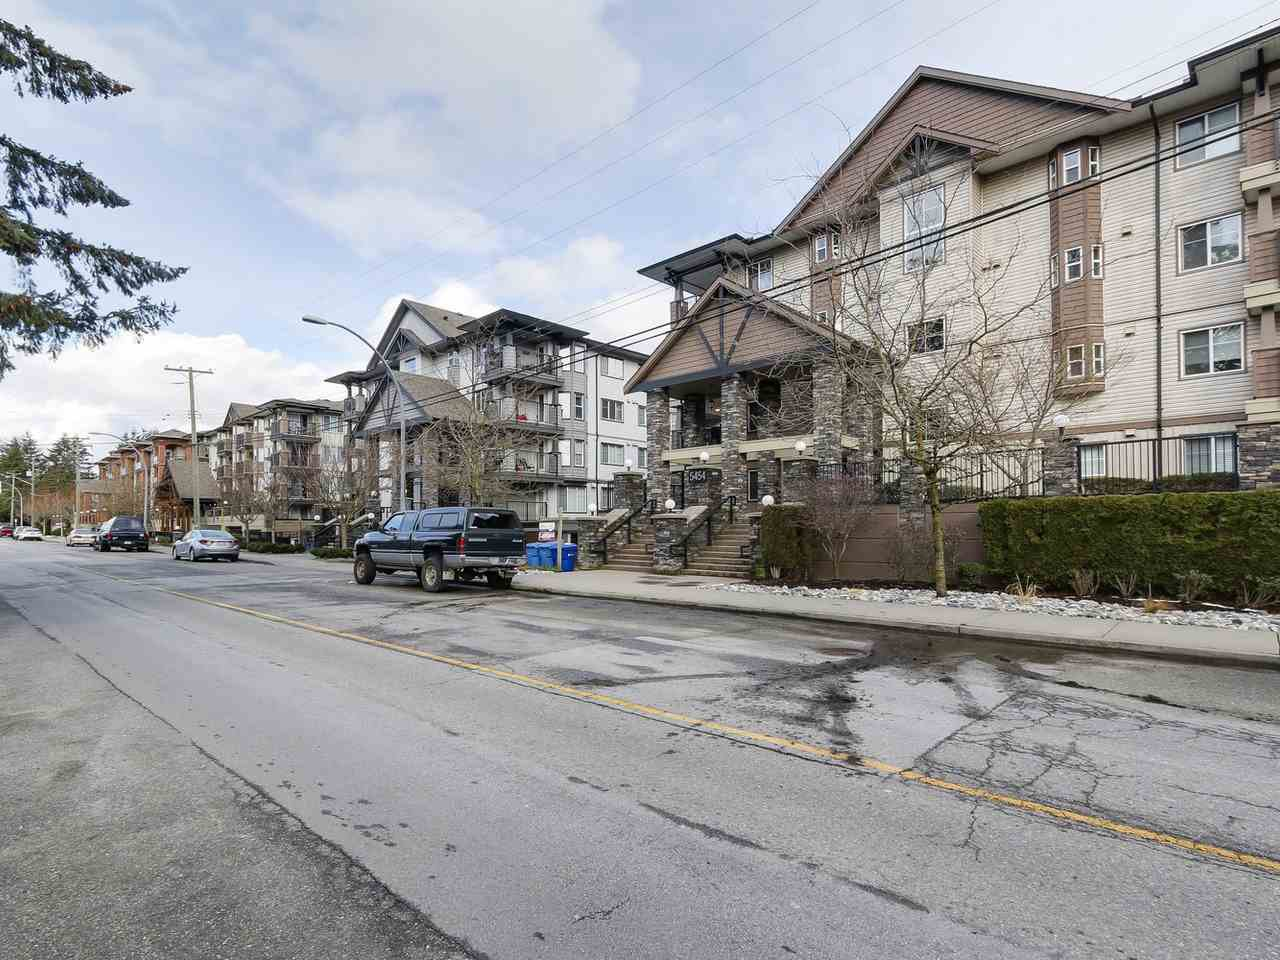 """Main Photo: 407 5454 198TH Street in Langley: Langley City Condo for sale in """"BRYDON WALK"""" : MLS®# R2144433"""